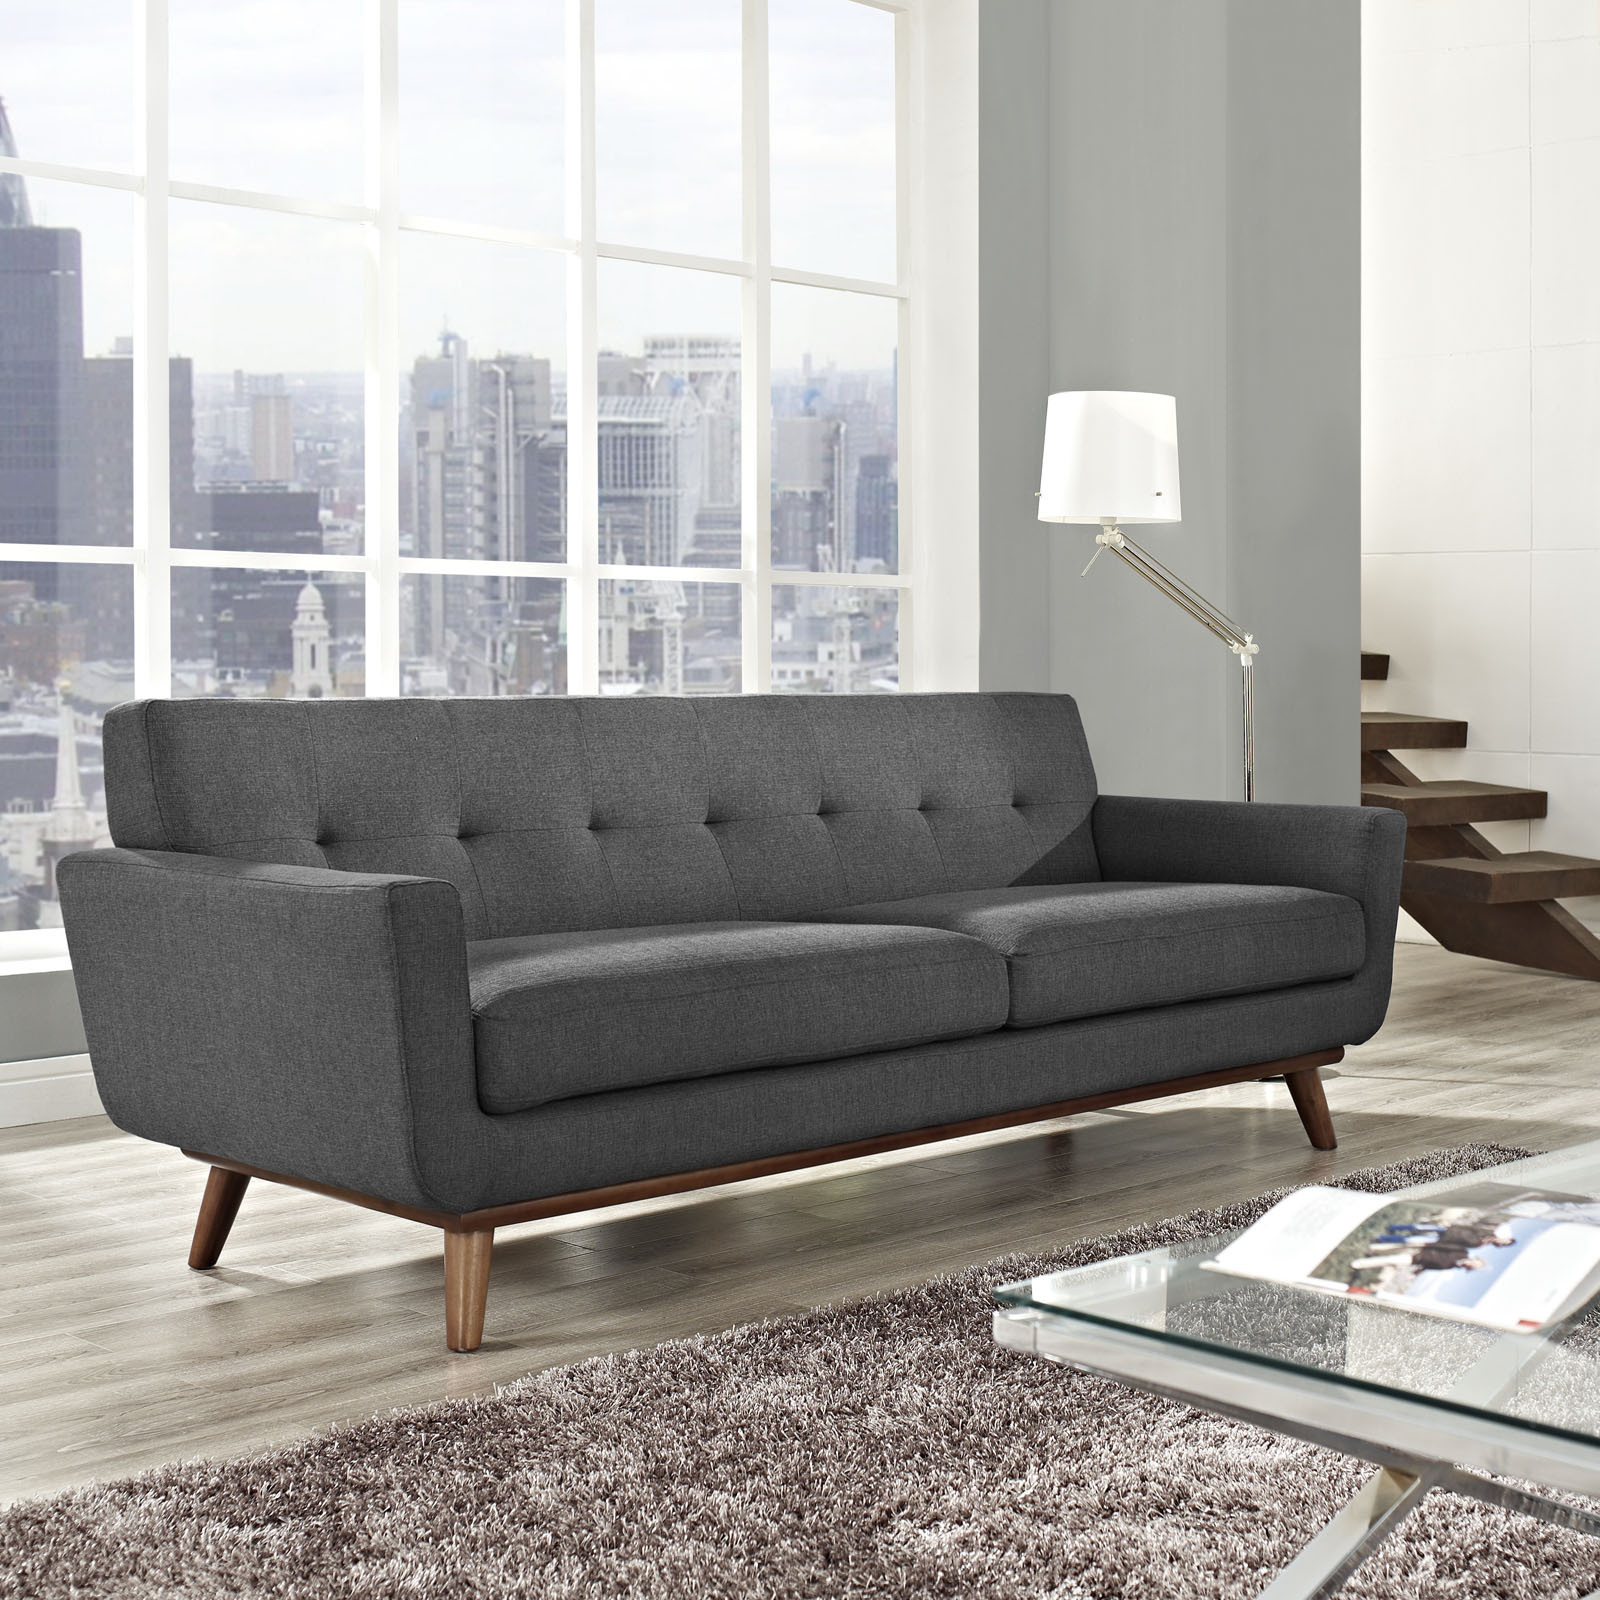 Living Room Ideas 2015 Top 5 Mid Century Modern Sofa: 5 Couch Styles For Your Living Room From Boho To Industrial